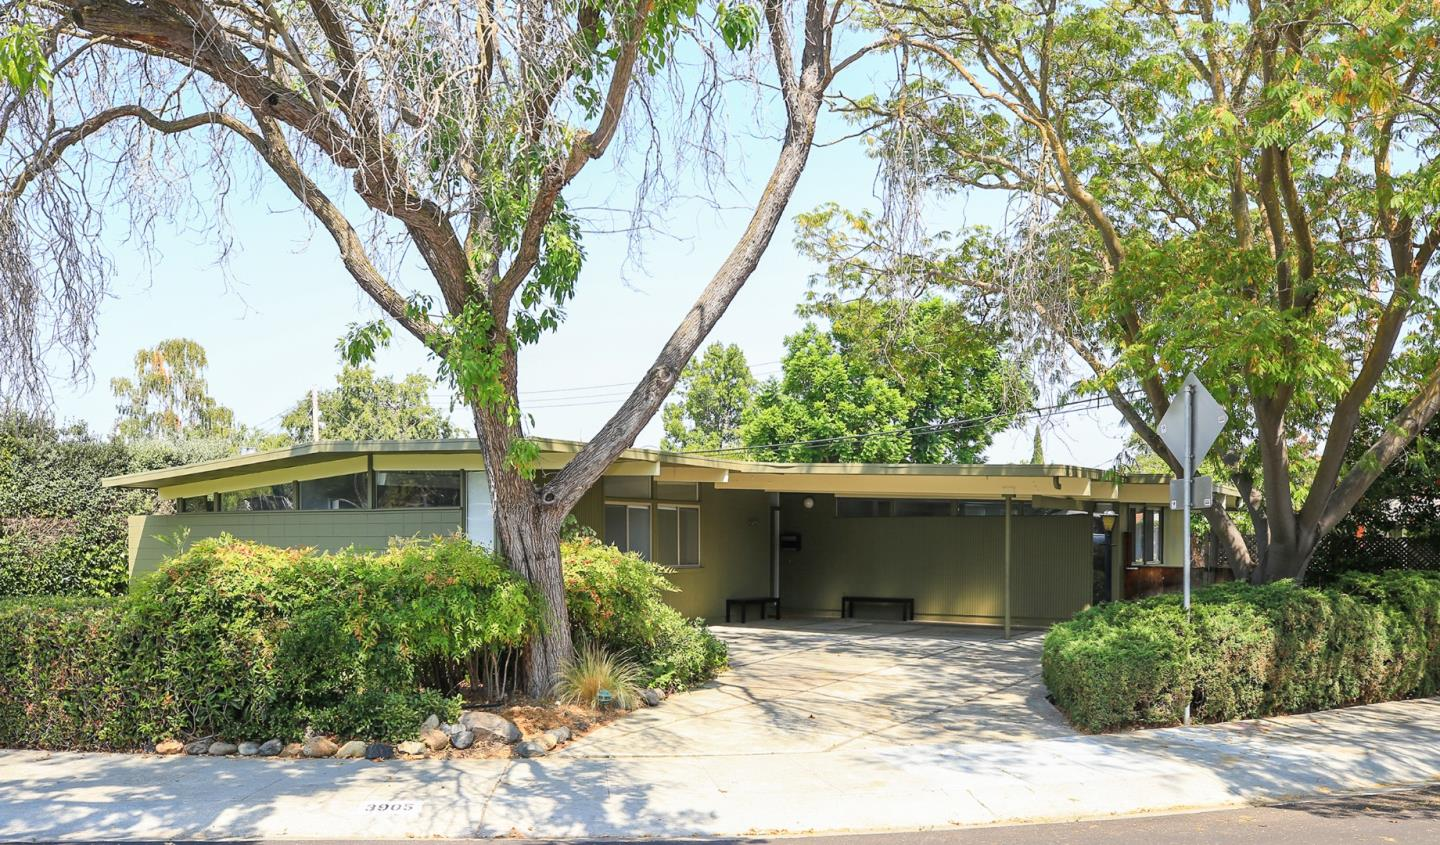 Sold 3905 duncan pl palo alto 94306 eichler homes realty - Craigslist hudson valley farm and garden ...